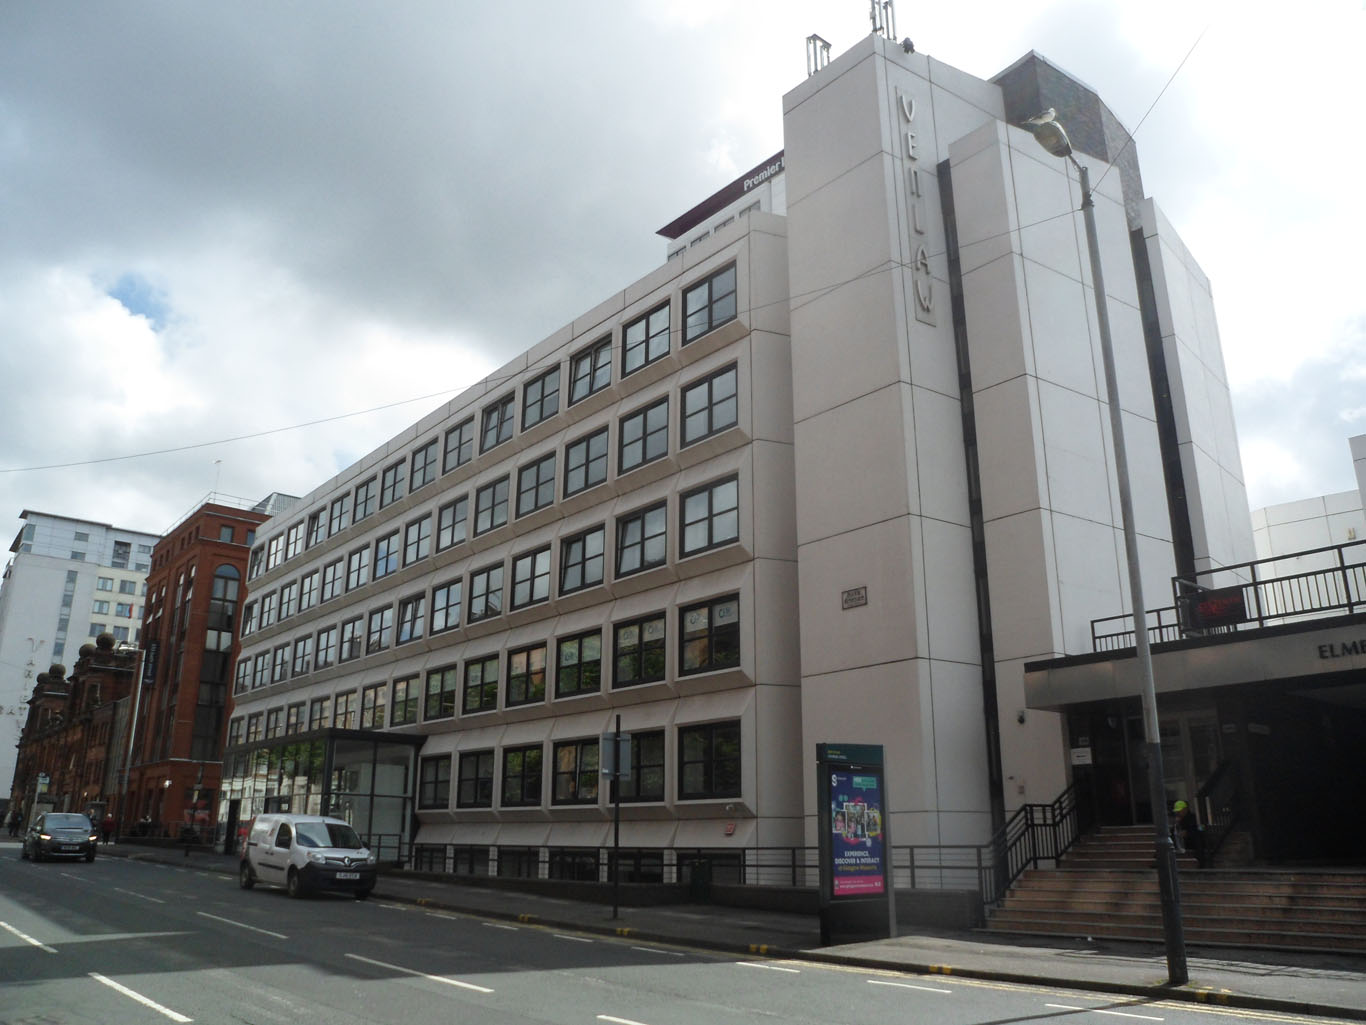 349 Bath Street, Glasgow, Scotland